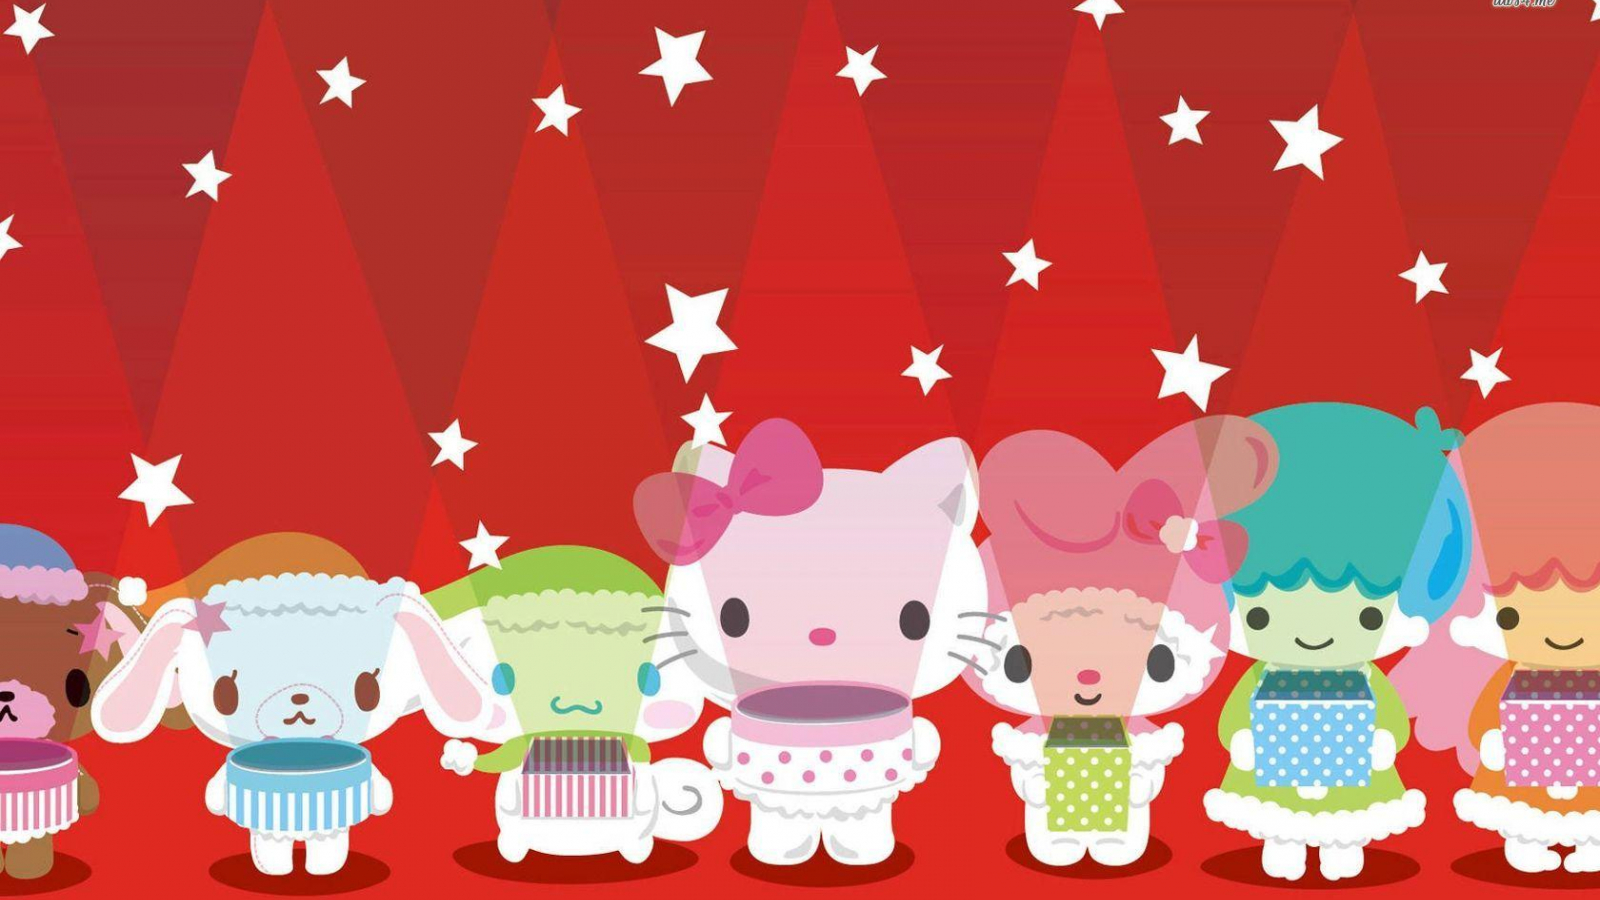 Free Download Hello Kitty And Friends Wallpapers 1680x1050 For